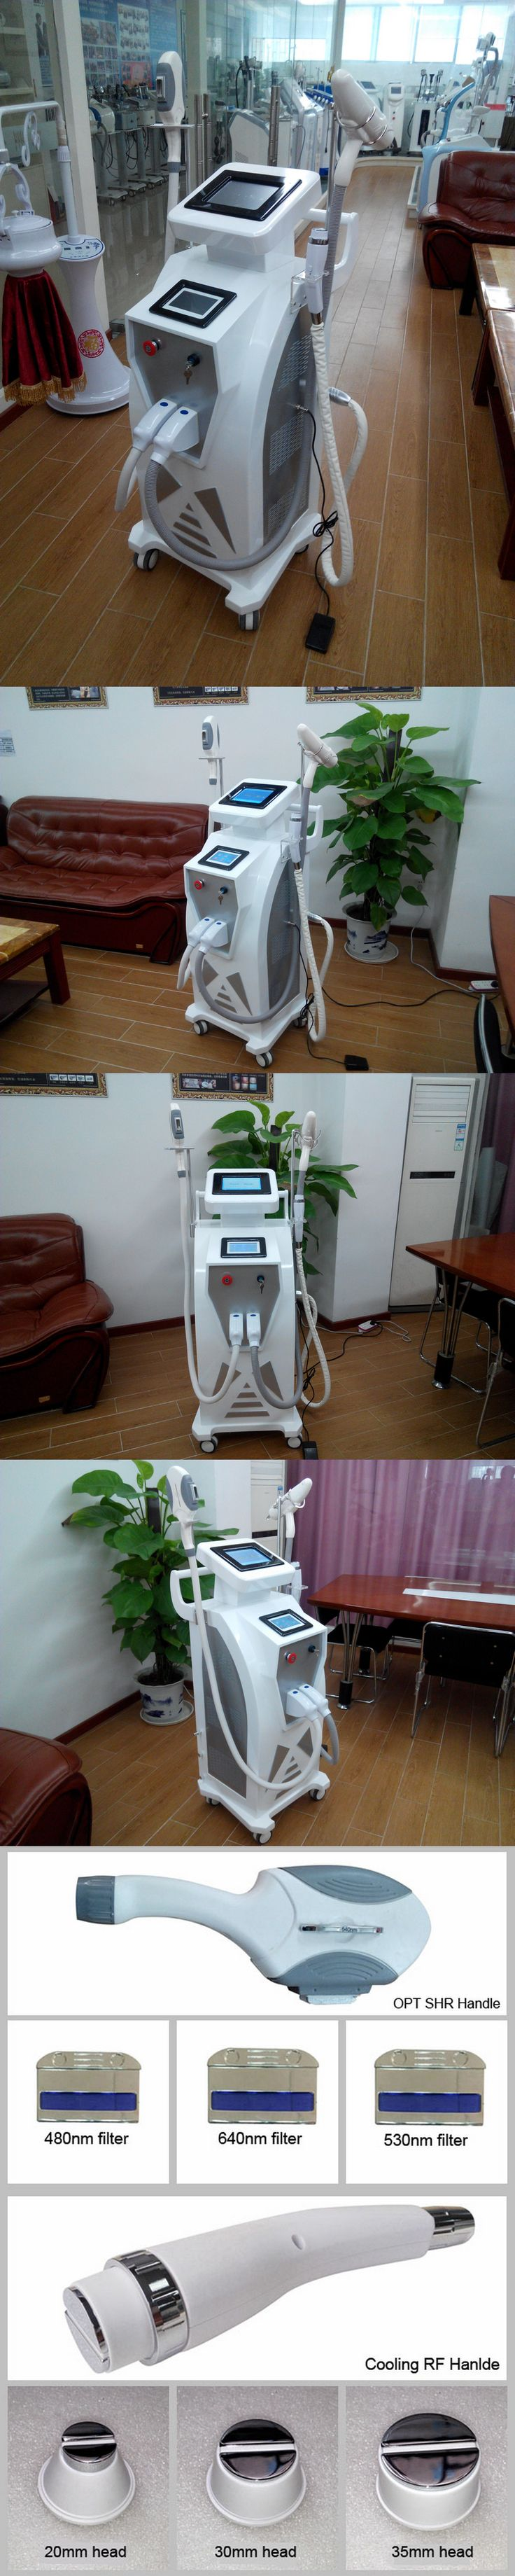 hair removal, weight loss, fat burning, tattoo removal, laser, yag laser, rf, face care, wrinkle removal, face lifting, pigmentation.